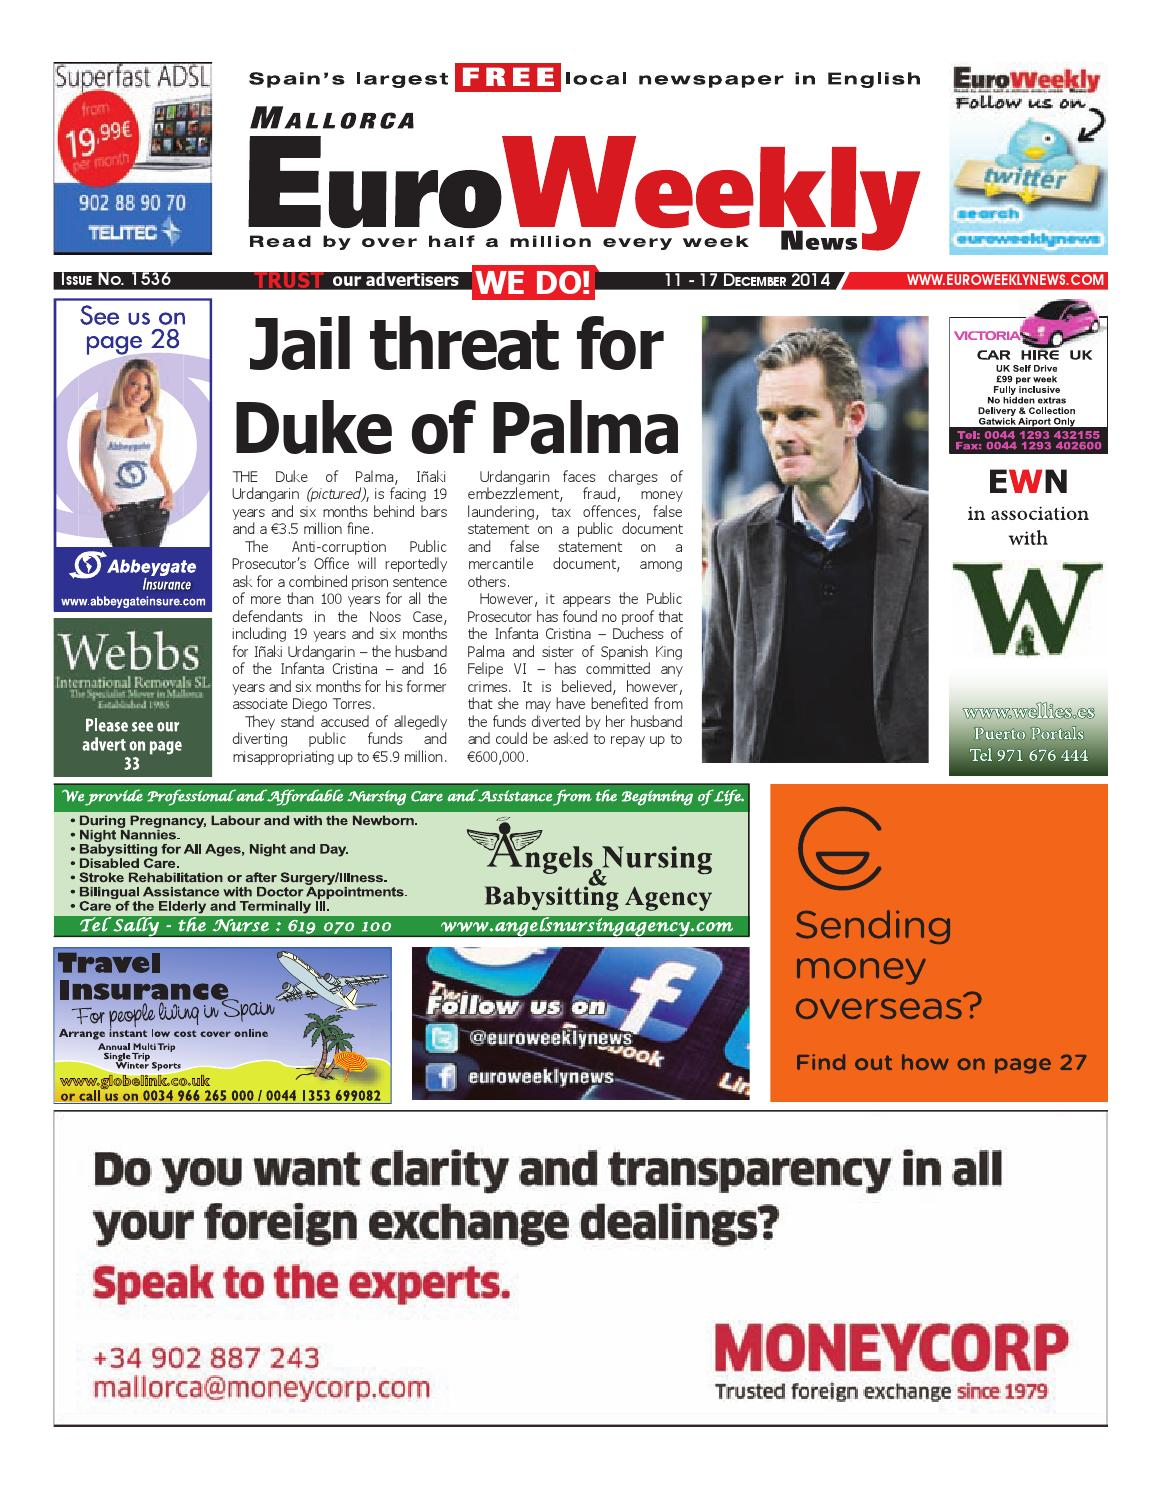 Euro Weekly News Mallorca 11 17 December 2014 Issue 1536 By  # Muebles Pose Mato